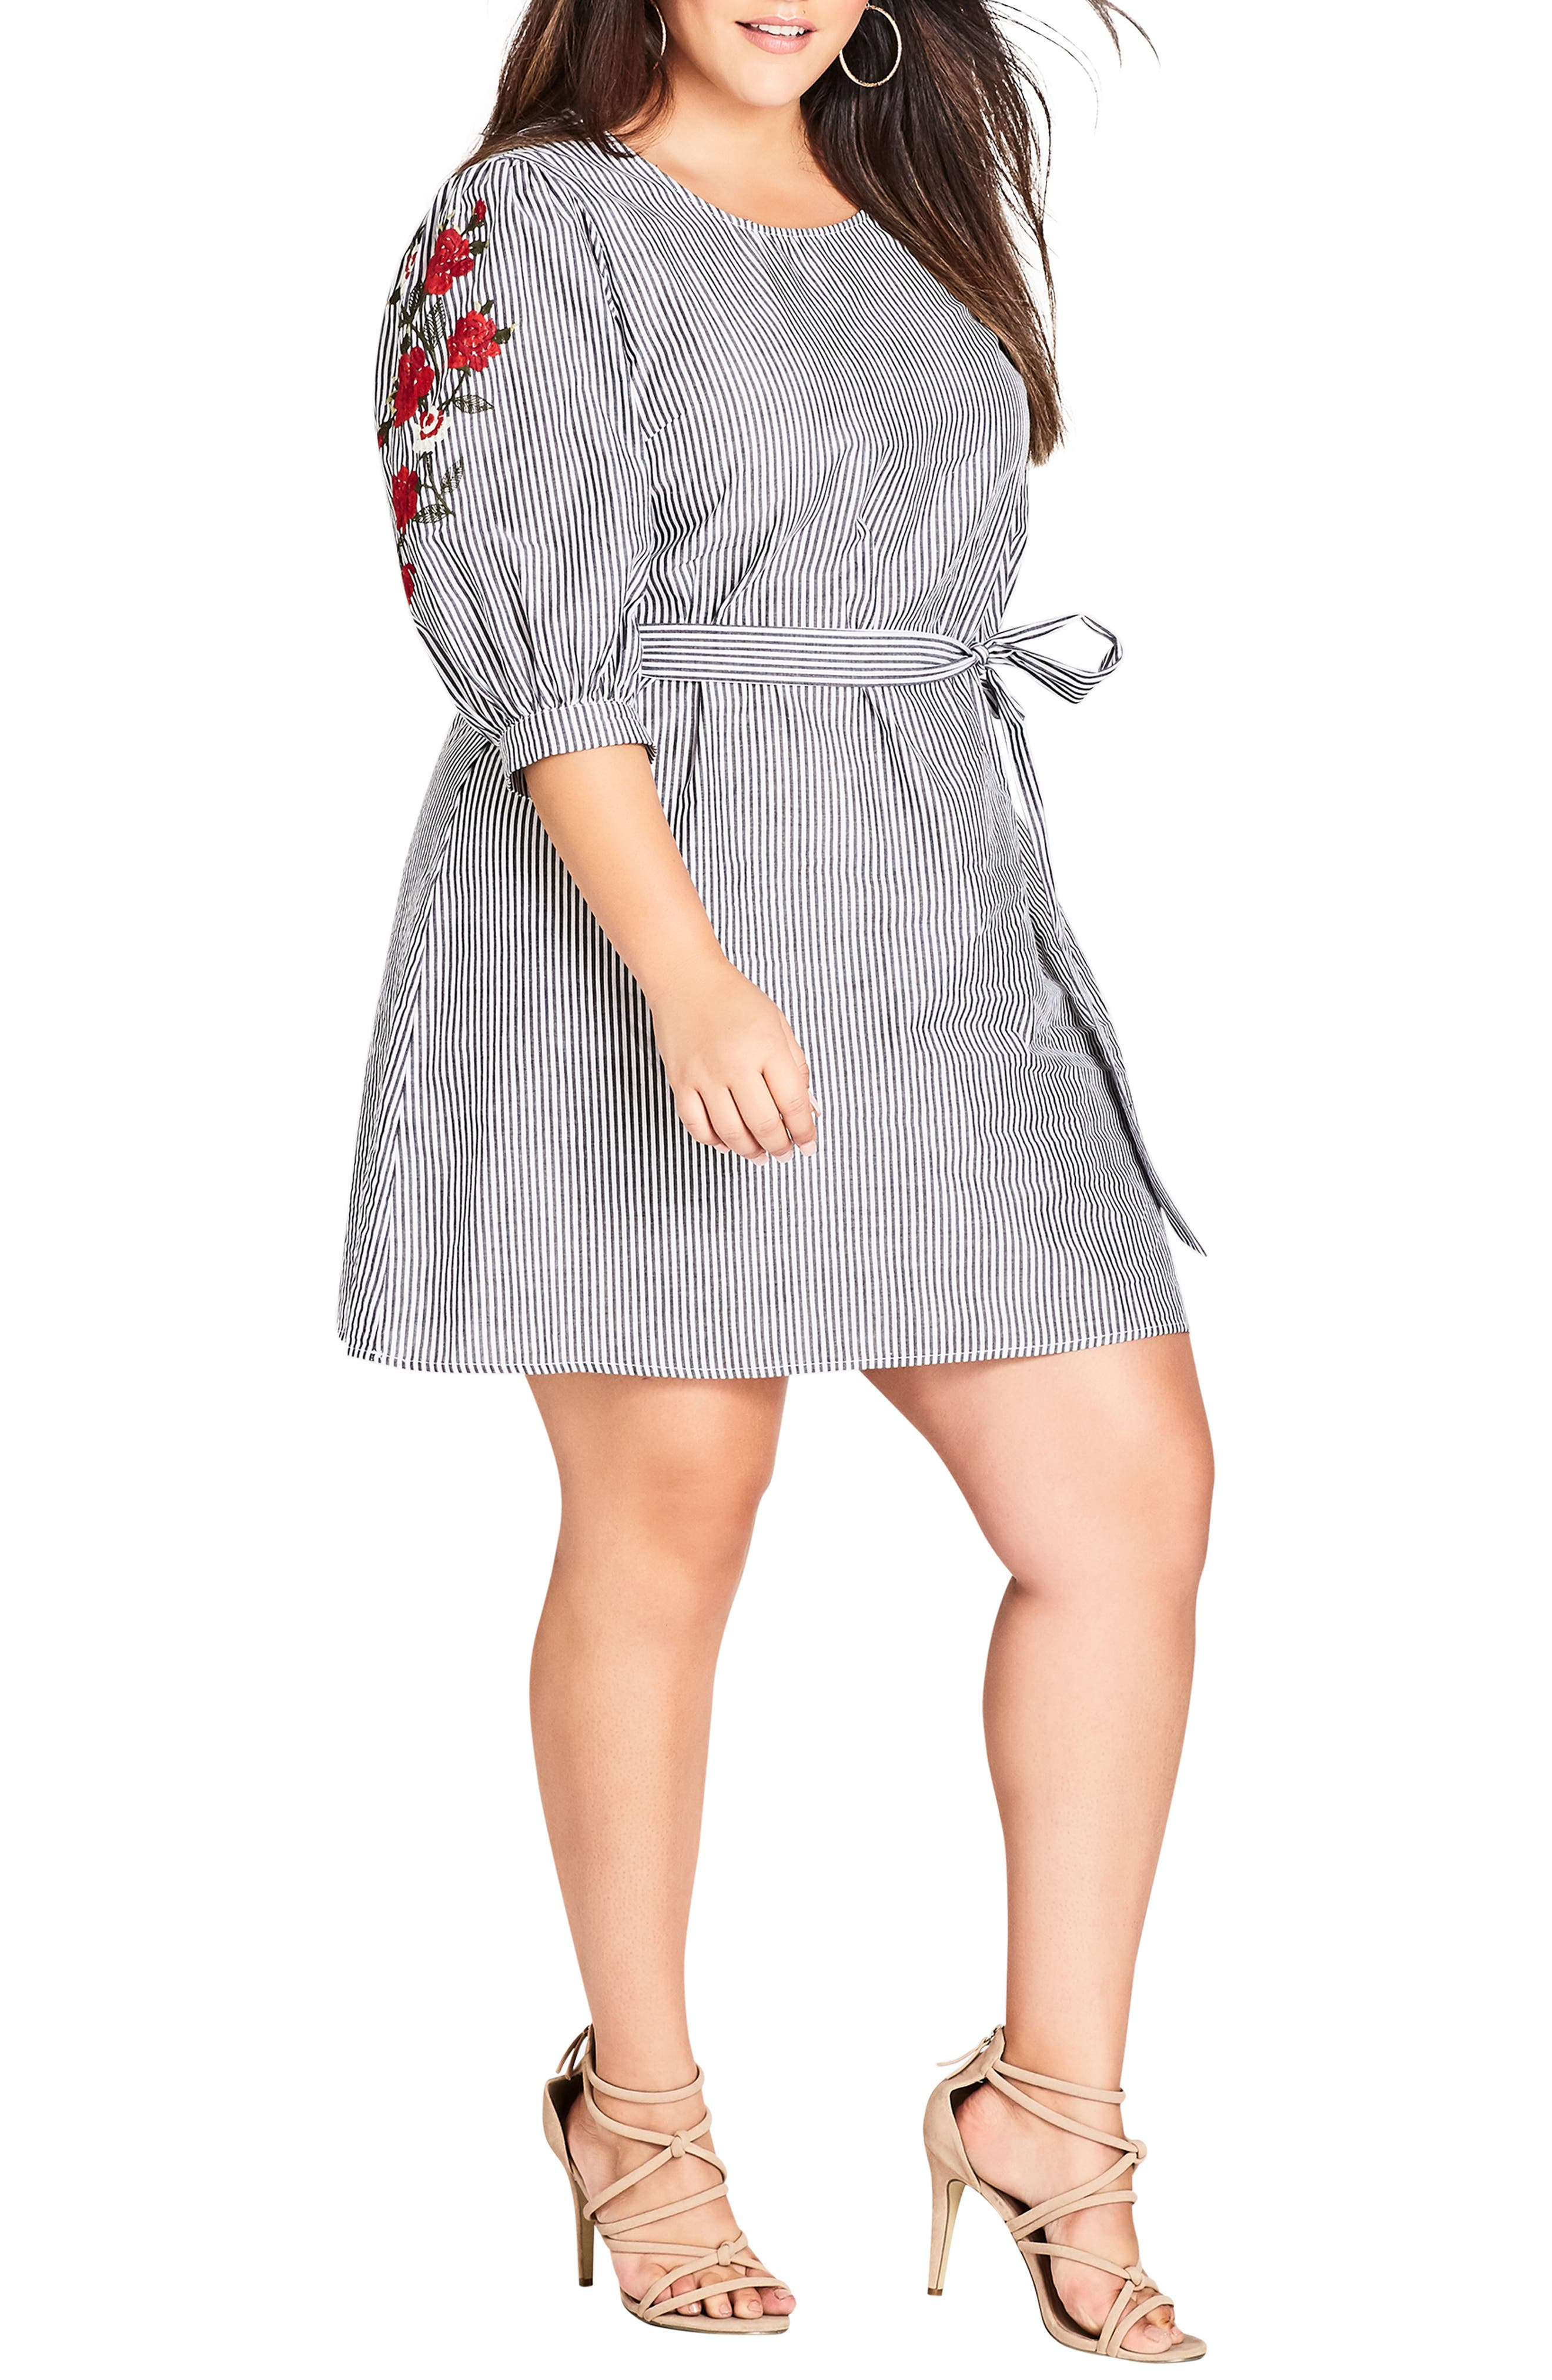 Plus Size City Chic Flower Embroidered Stripe Dress